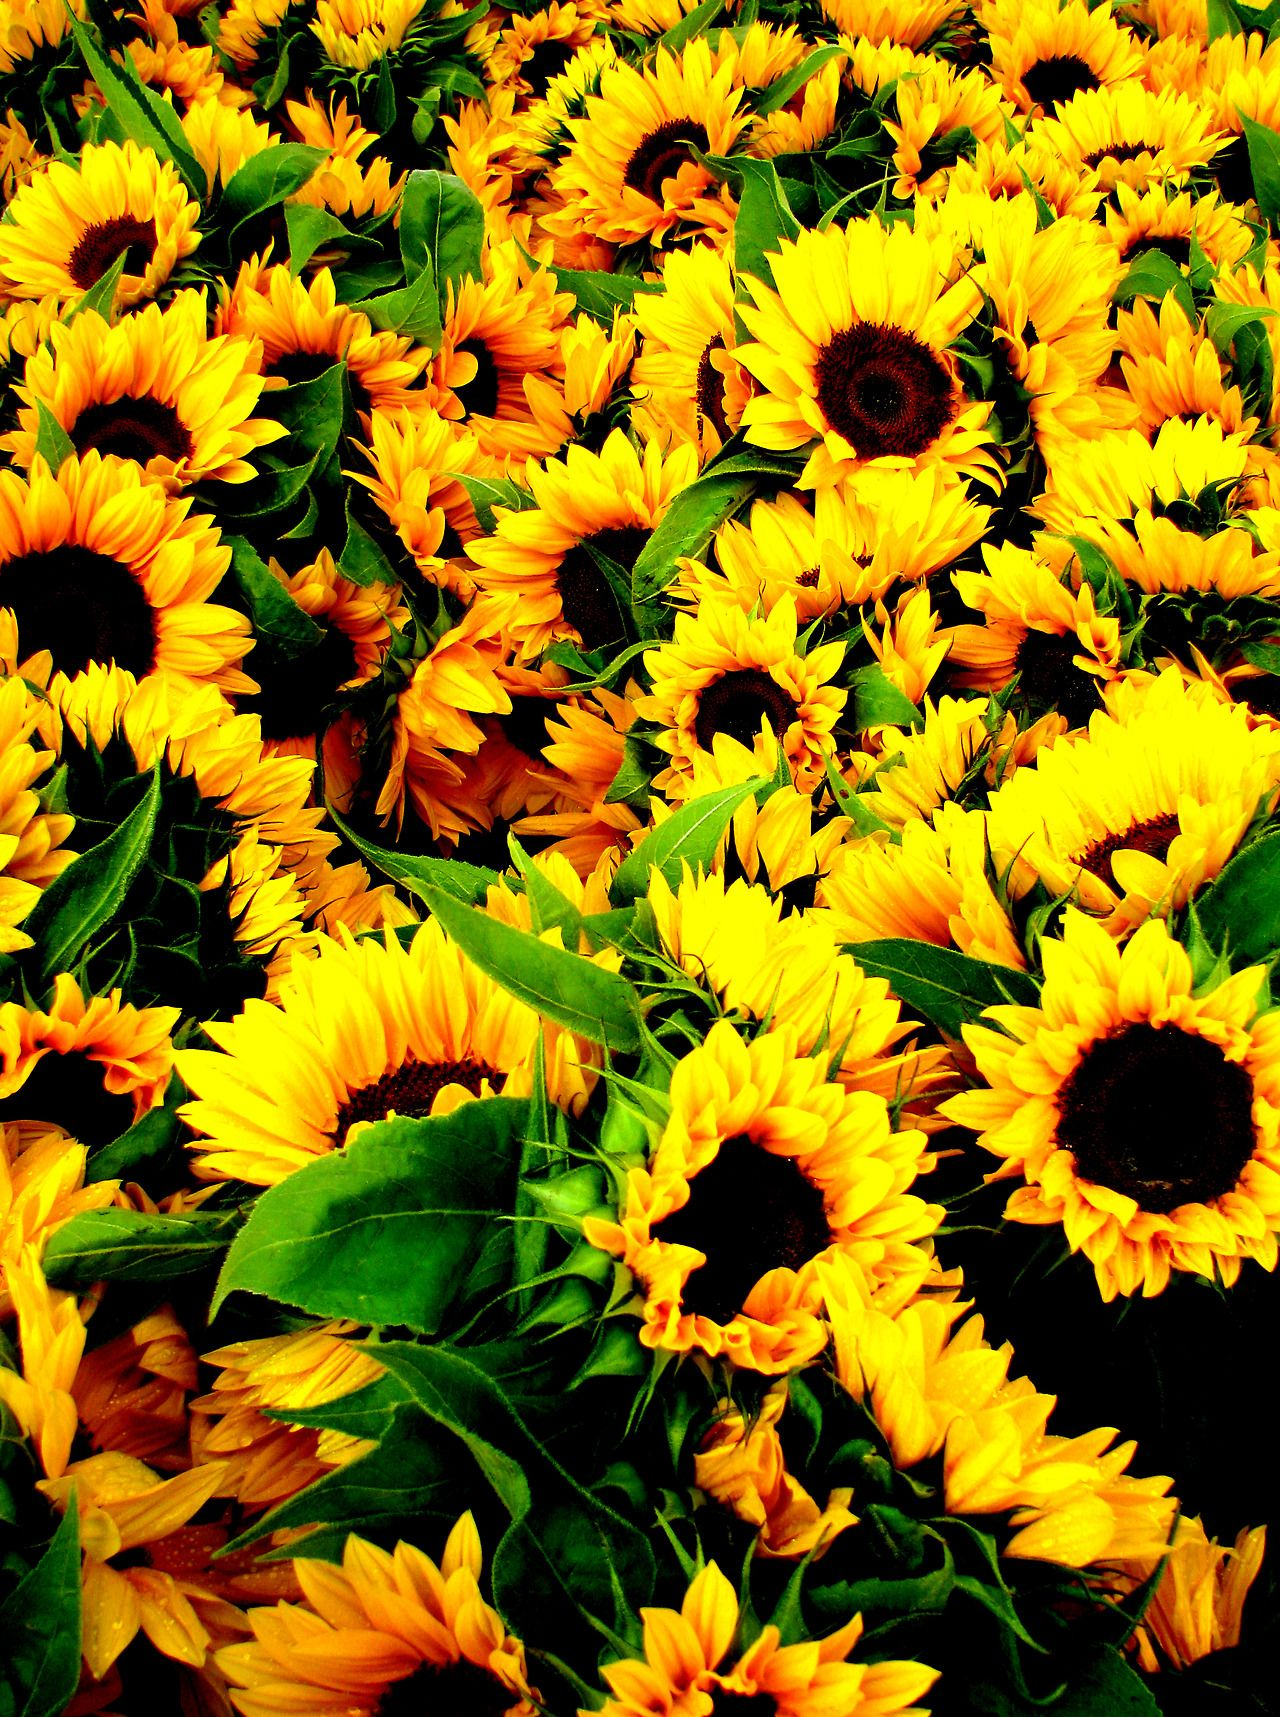 Yellow the energy vibration of joy, fun, cheerfulness and